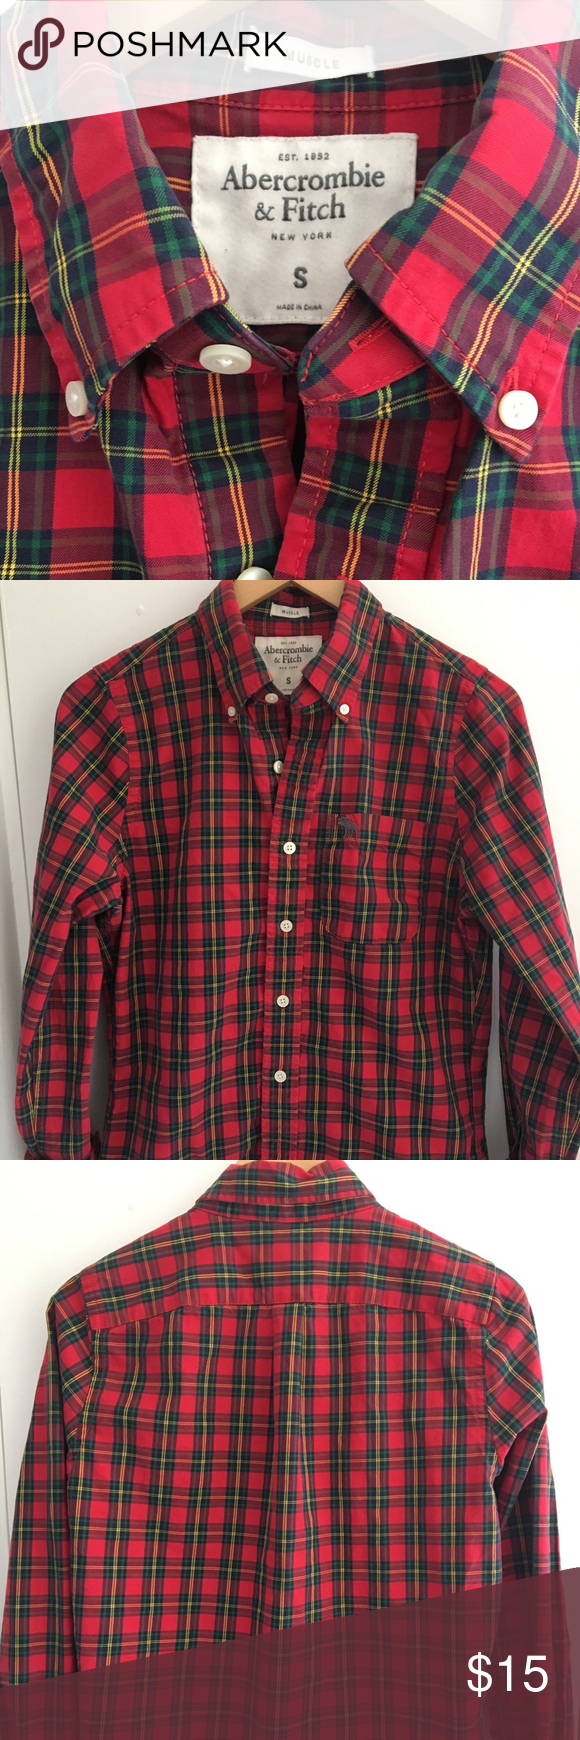 Abercrombie   Fitch Red Plaid Button Up • Red   green cotton plaid button  up • 7443eb23b